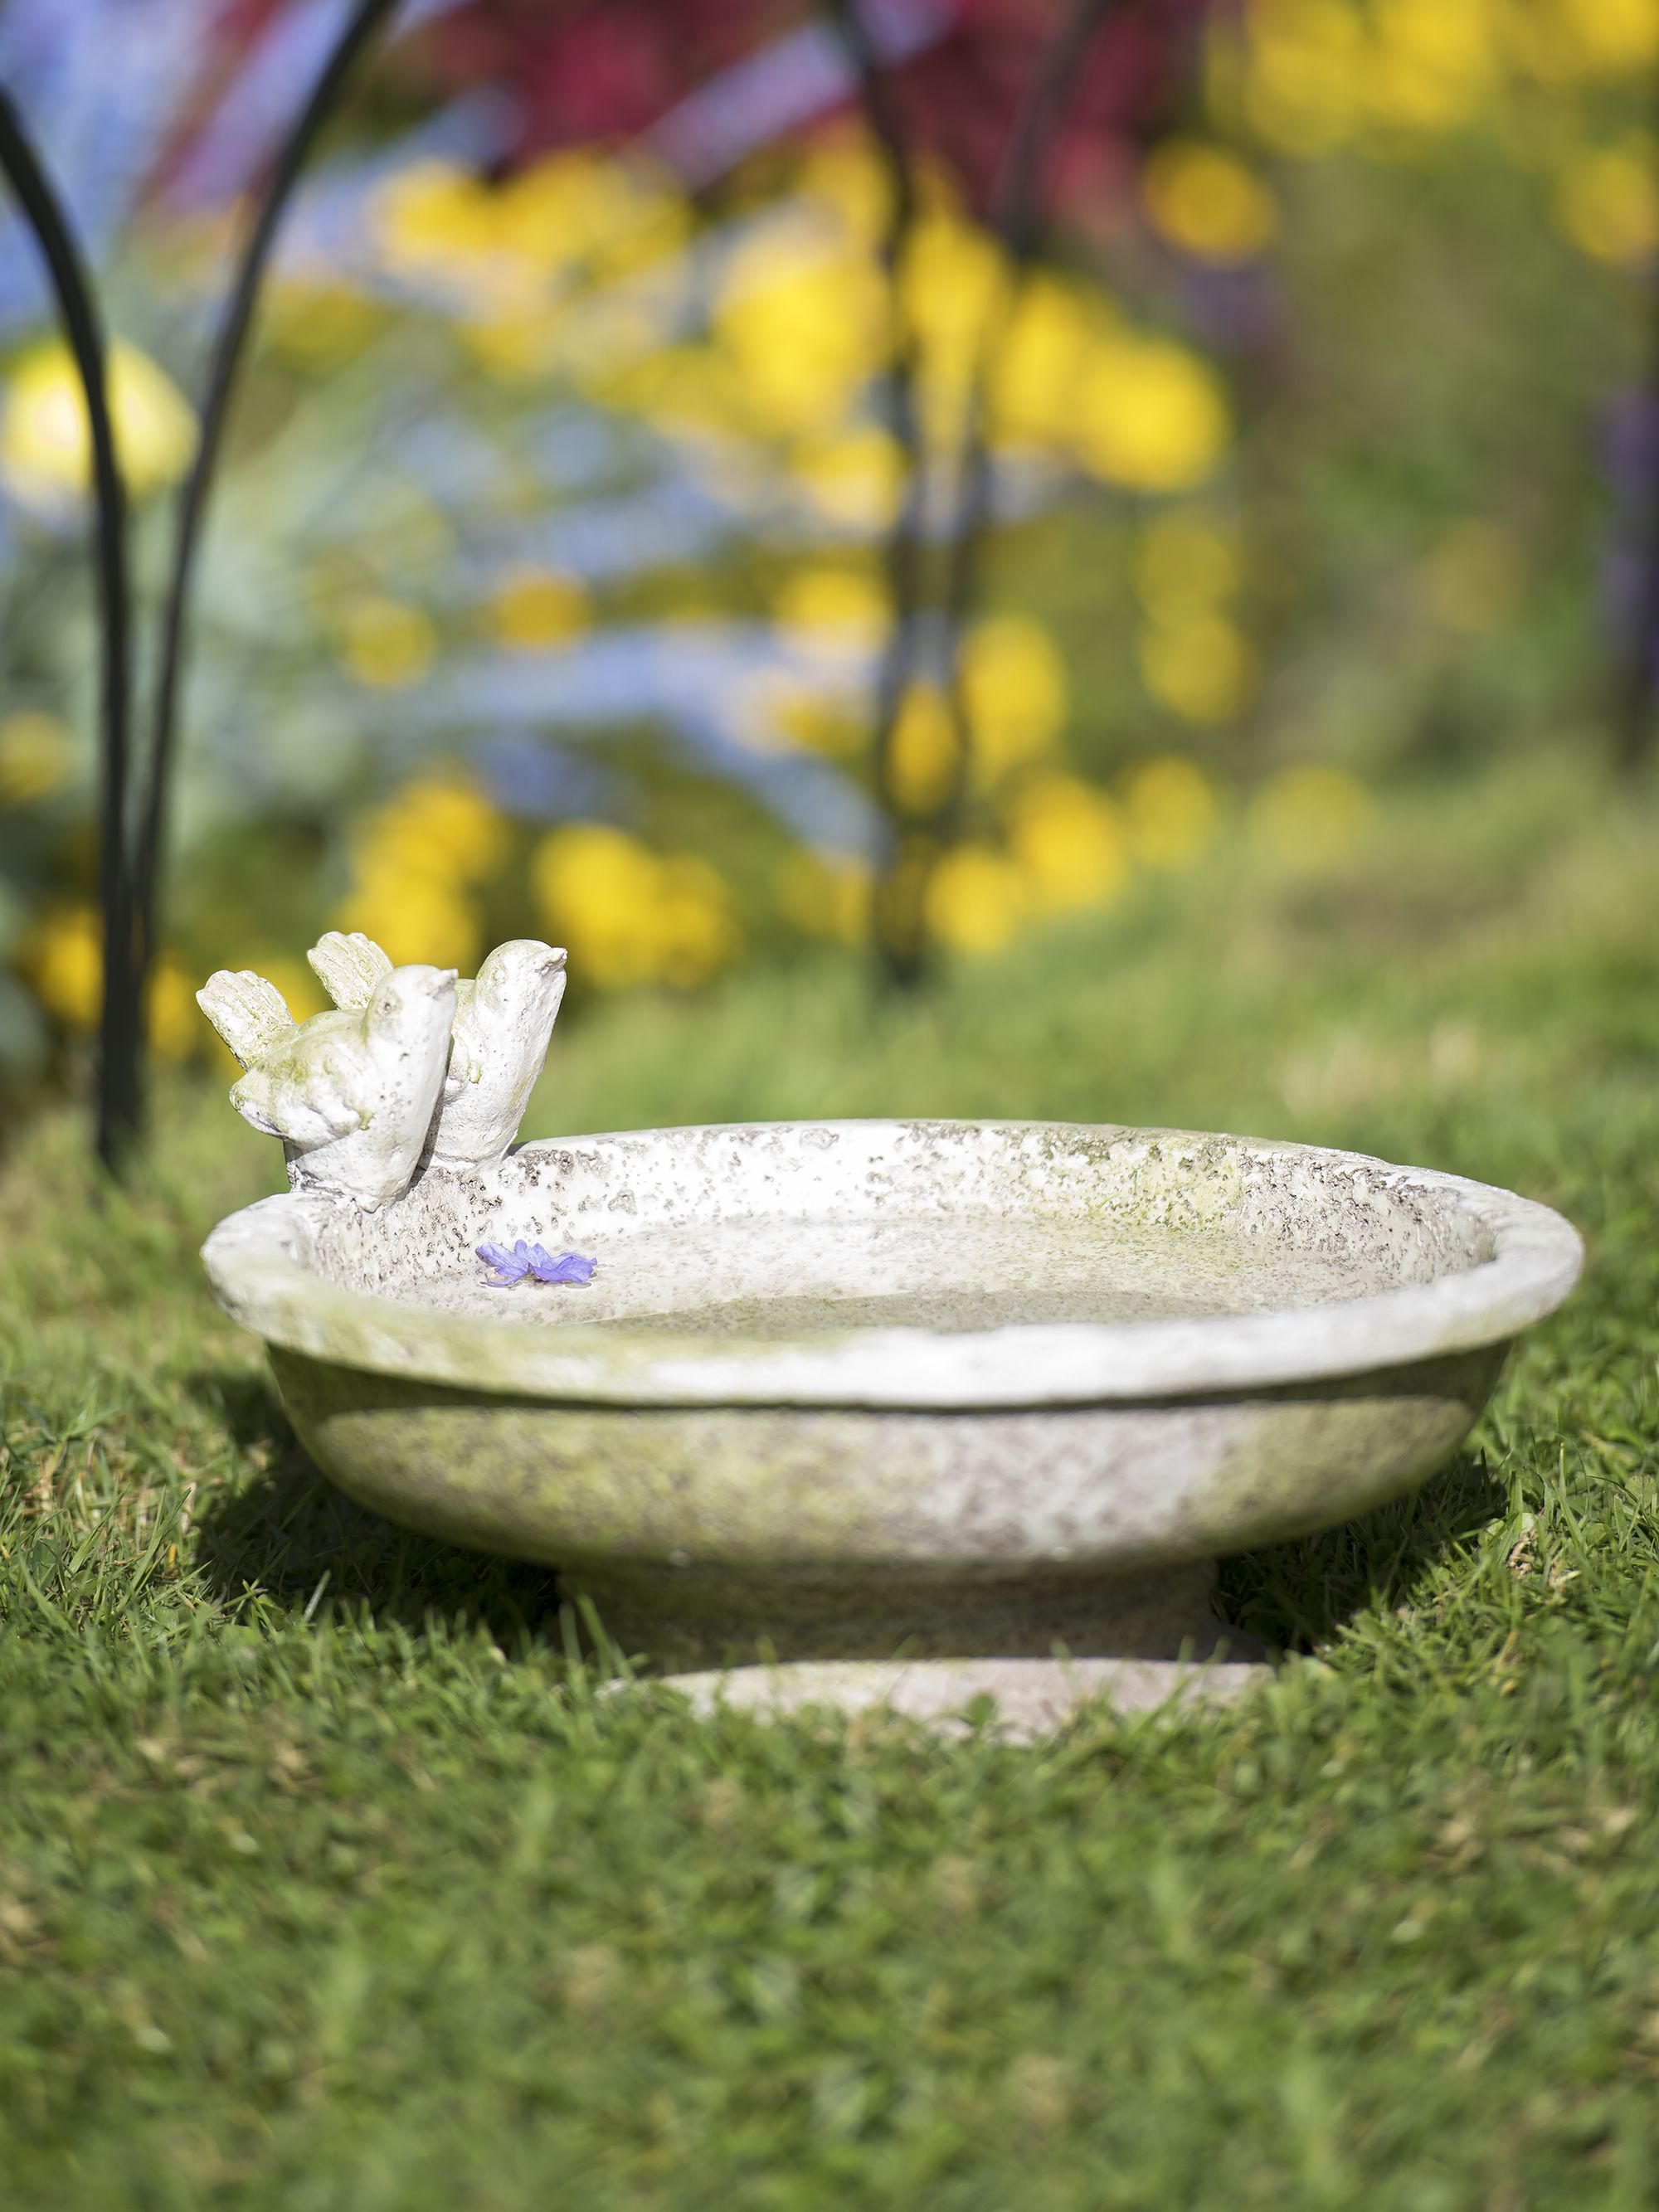 Low-Profile Bird Bath Accents Deck or Garden | Patio decor ...